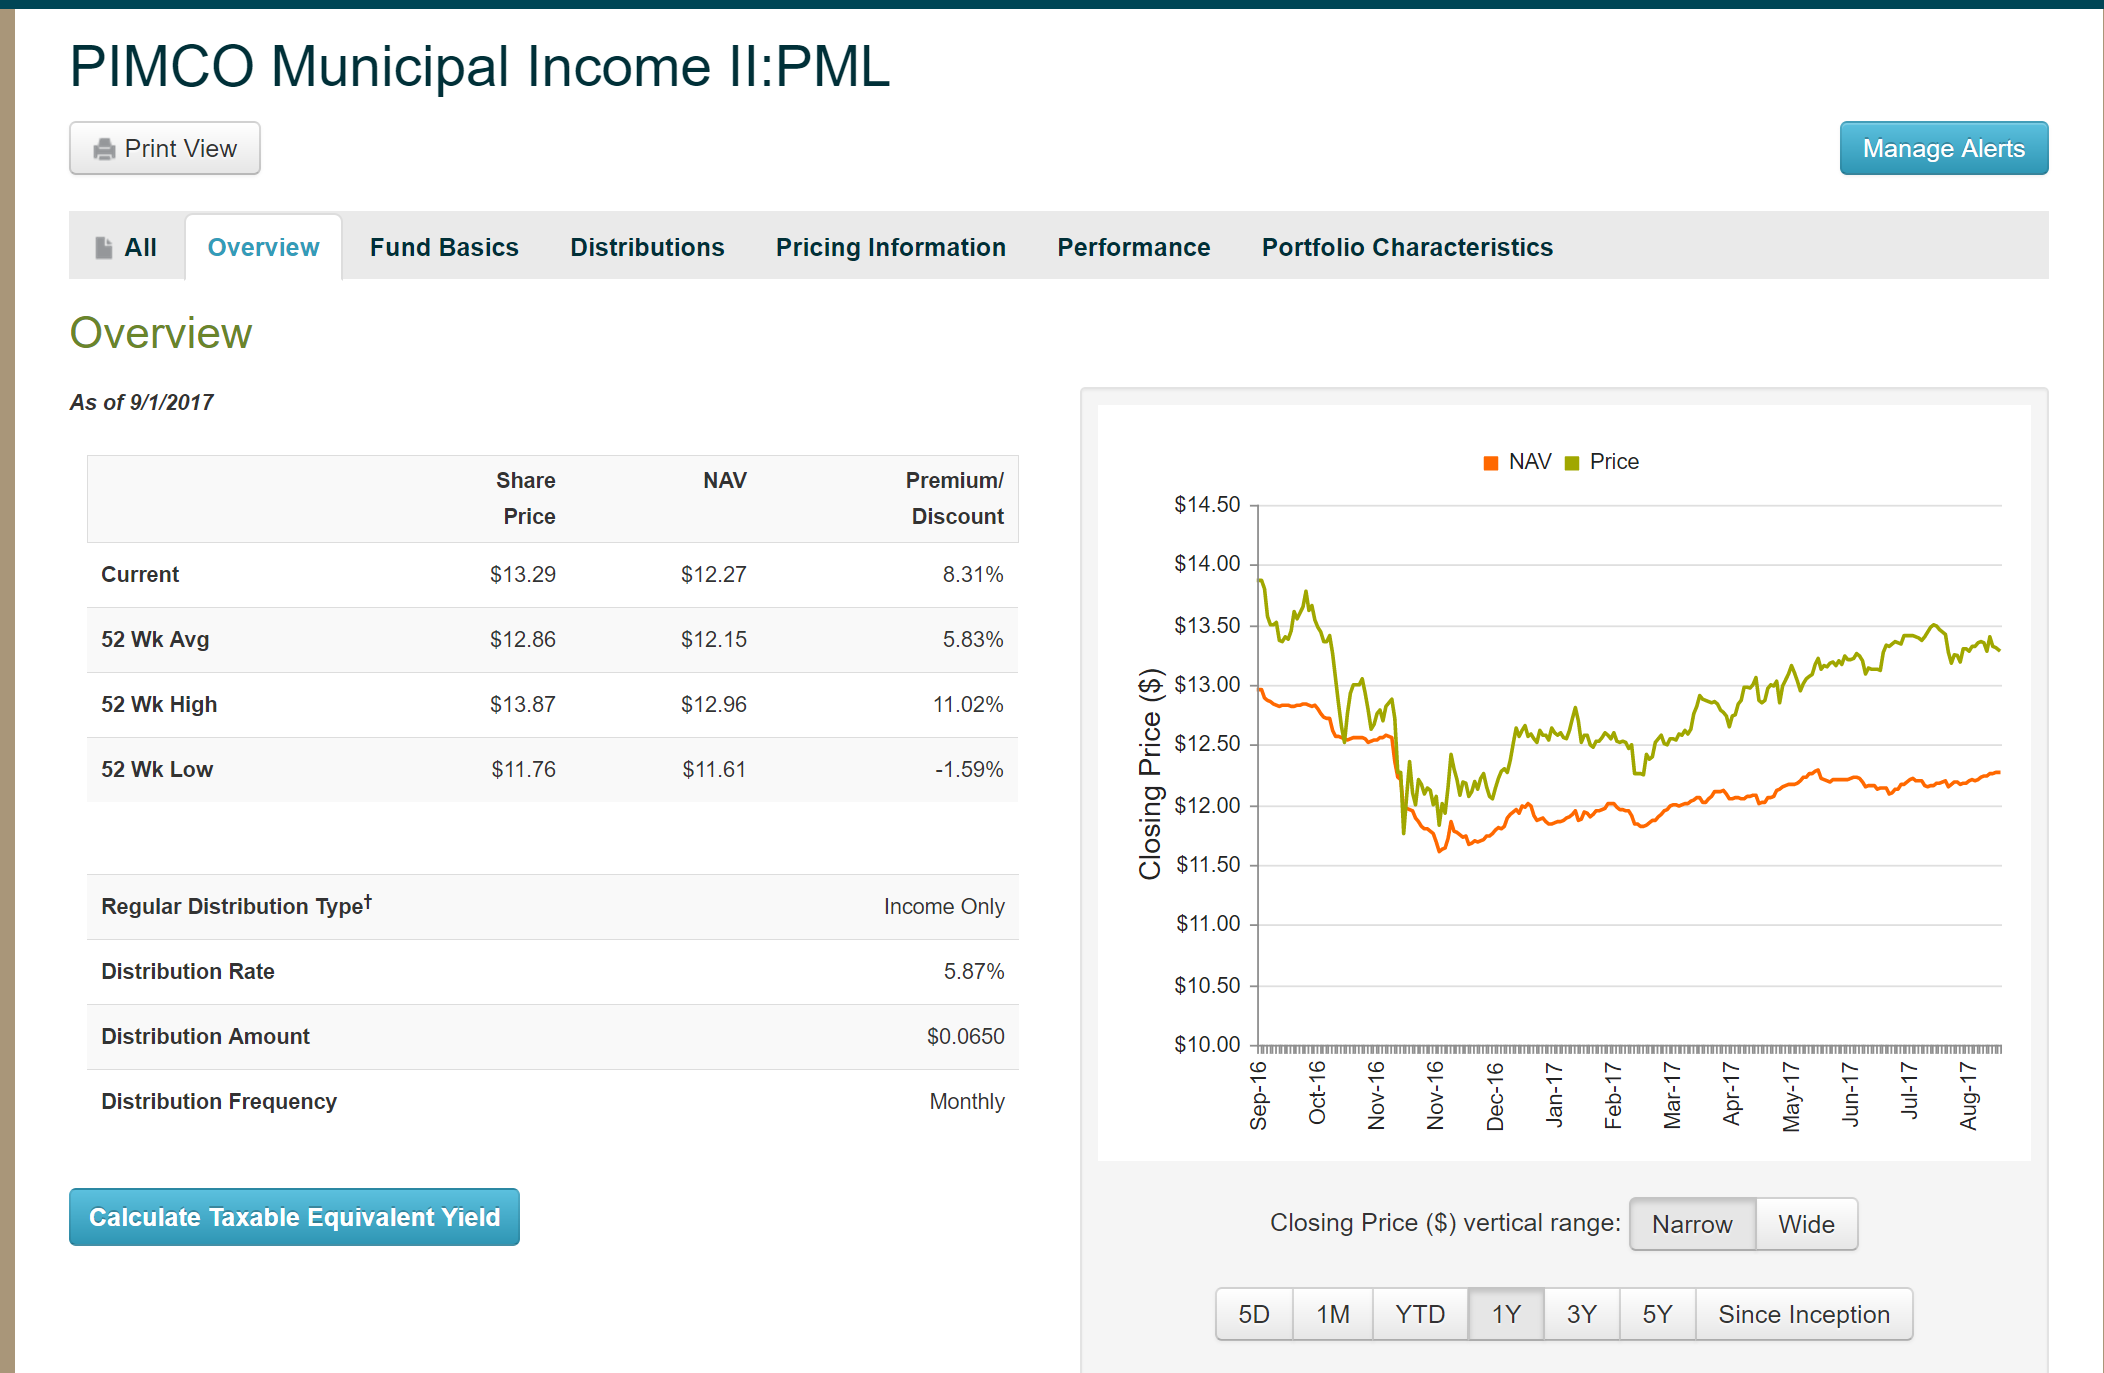 Trading municipal bond funds seeking alpha i clicked on pimco municipal income ii pml and it opened to the following page which is the broad overview of the fund biocorpaavc Image collections